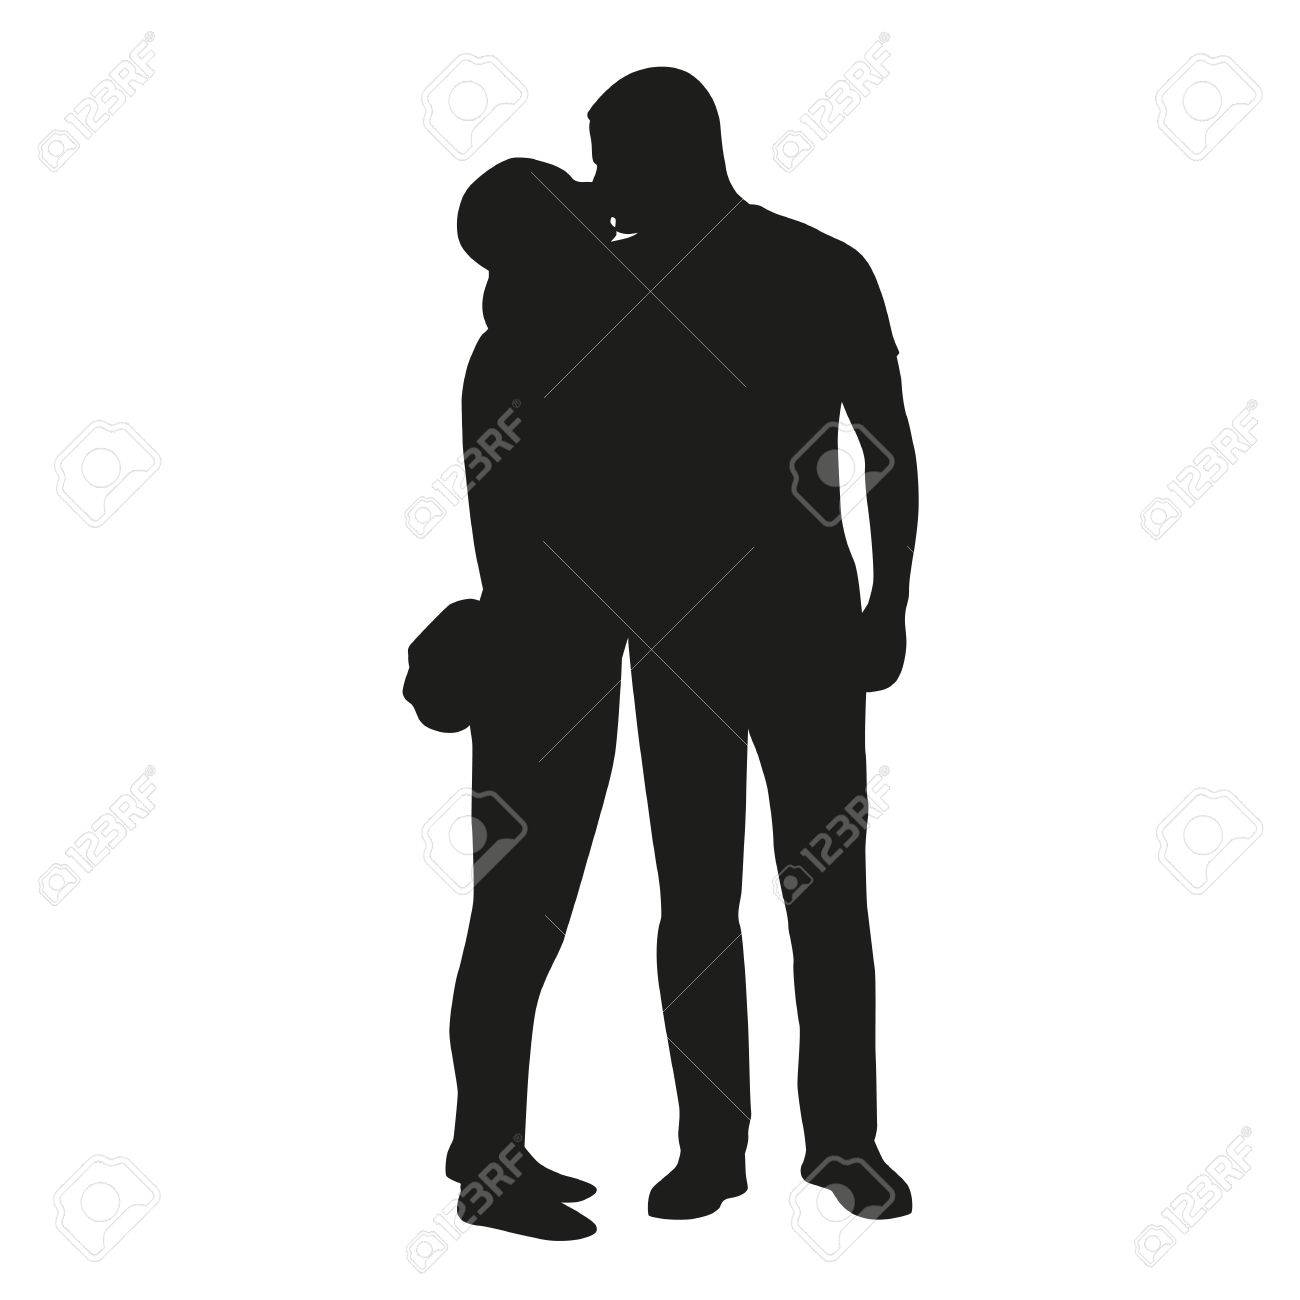 Kissing Couple Silhouette Royalty Free Cliparts, Vectors, And ... for Couple Silhouette Umbrella Kissing  70ref